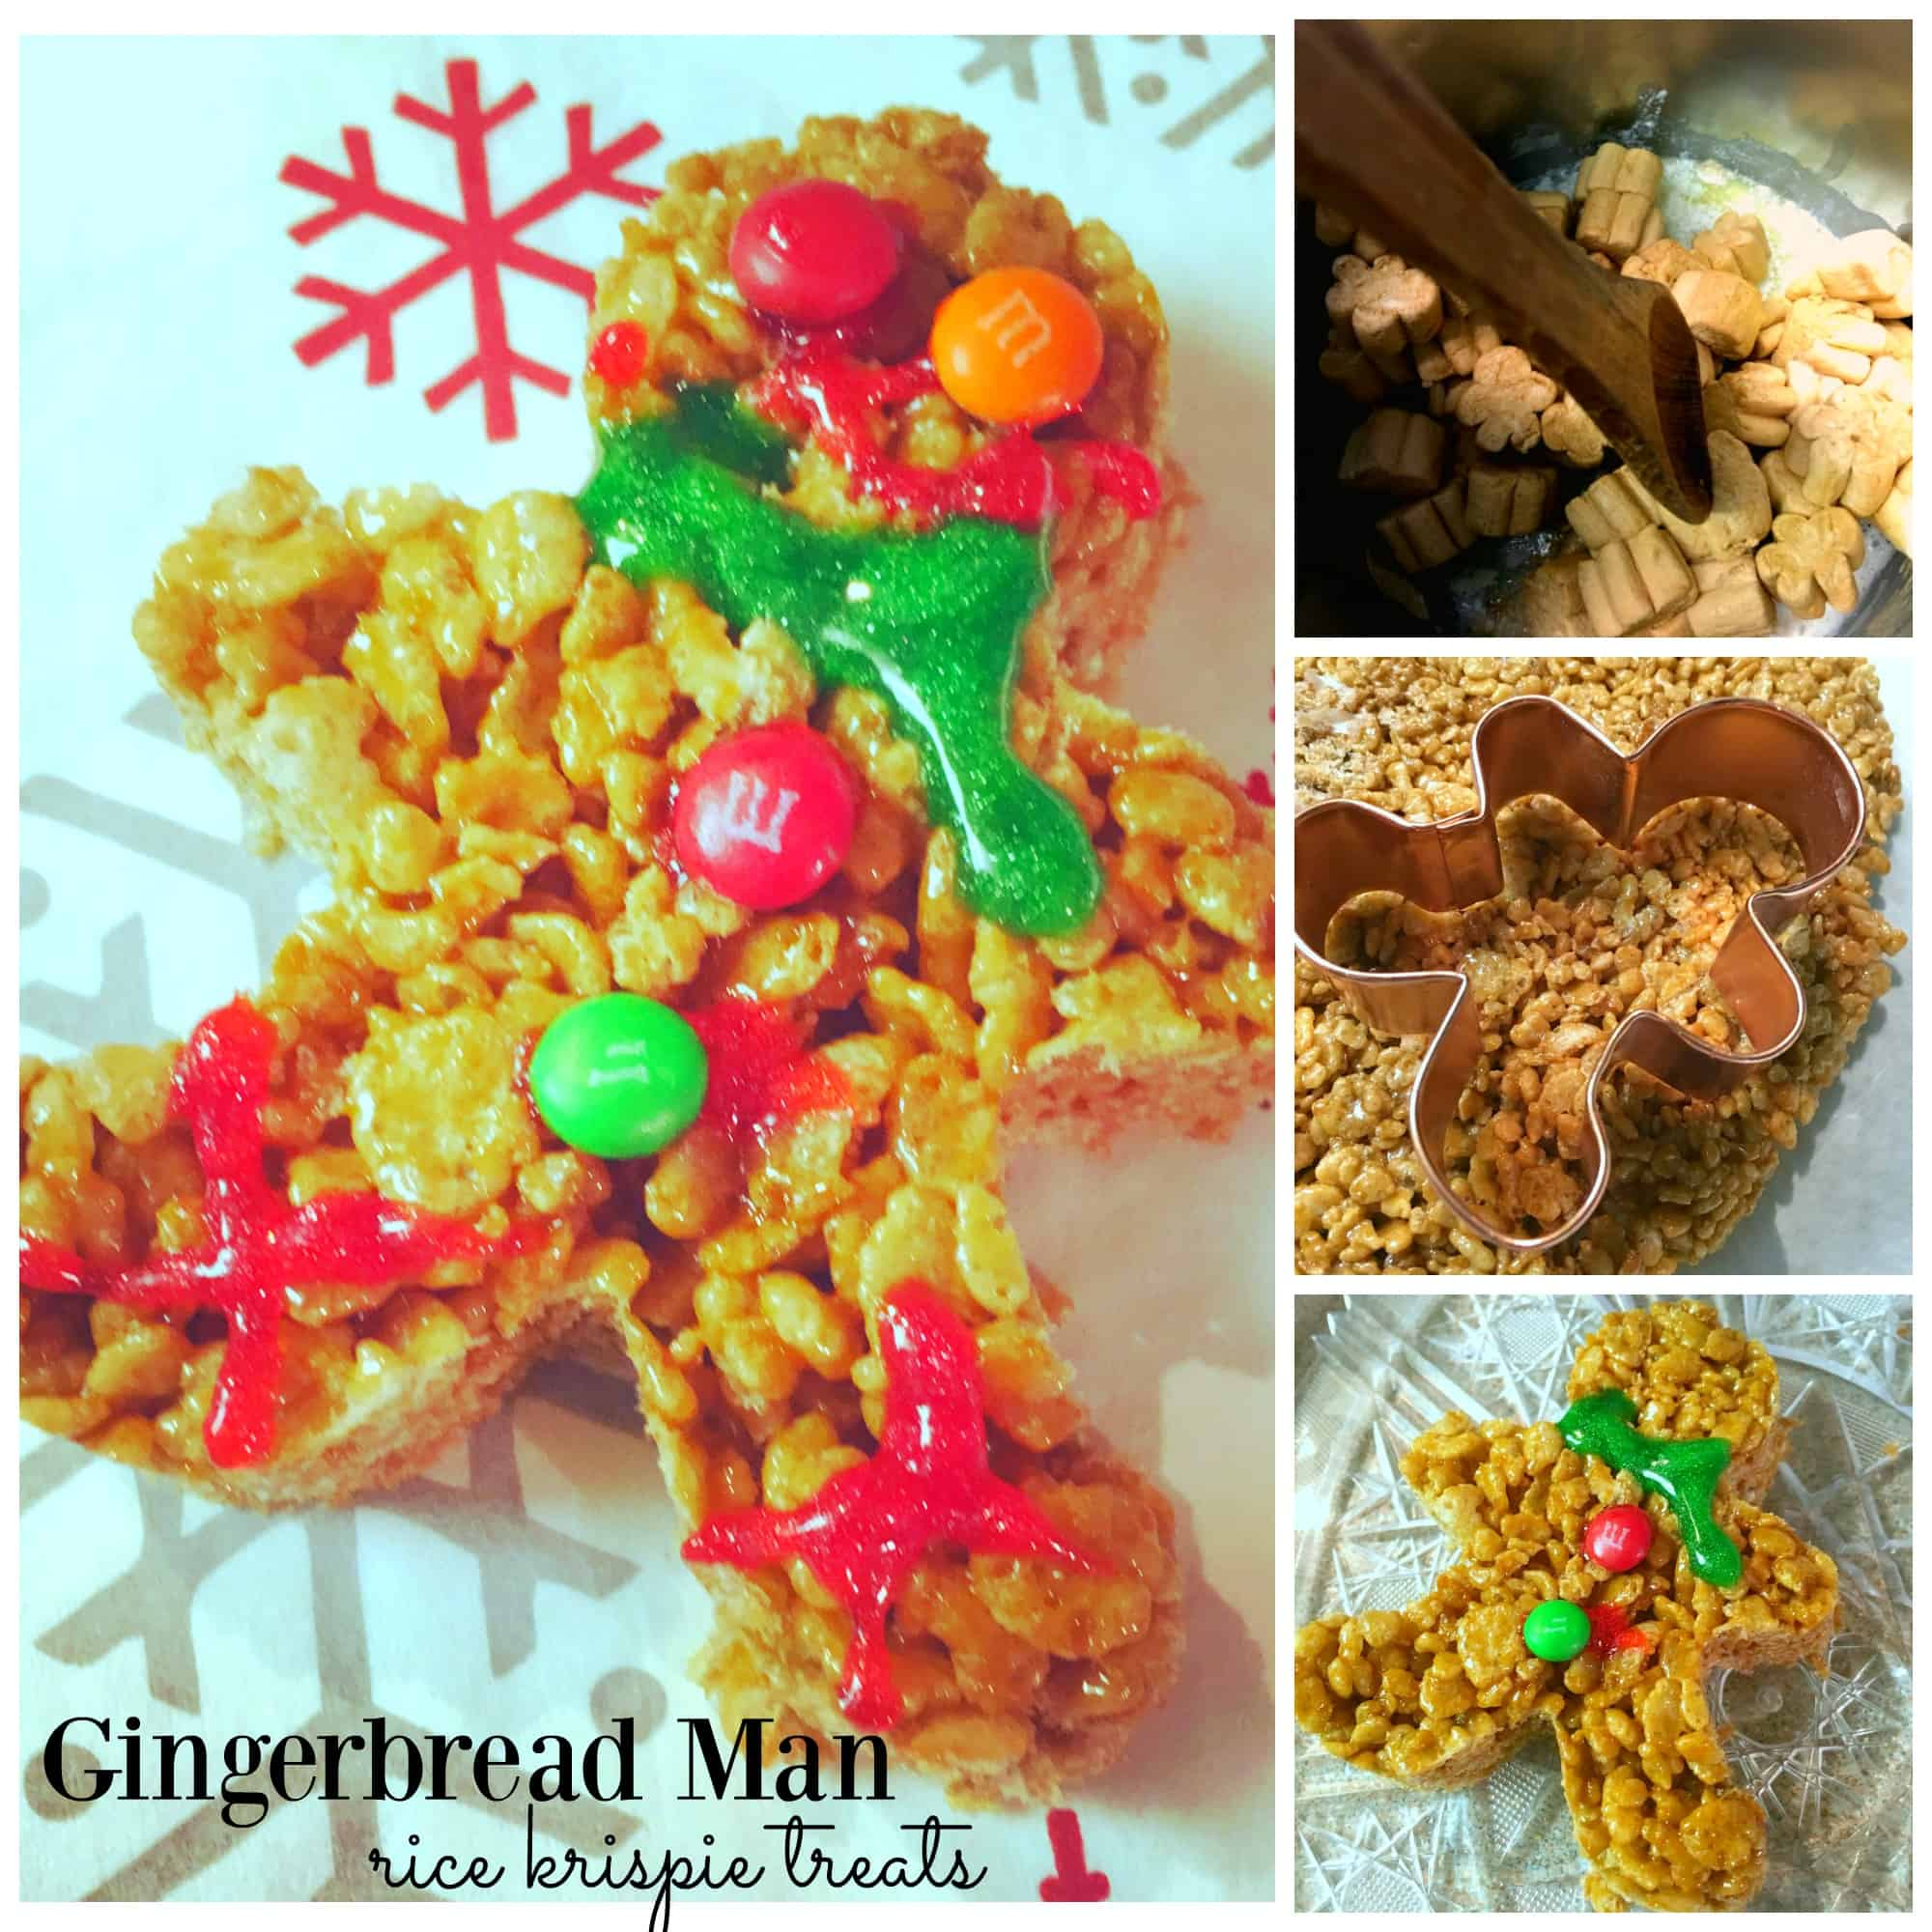 These gingerbread man rice krispie treats are super easy for kids to make and are adorable and festive for the holidays! Perfect for a kids' party.